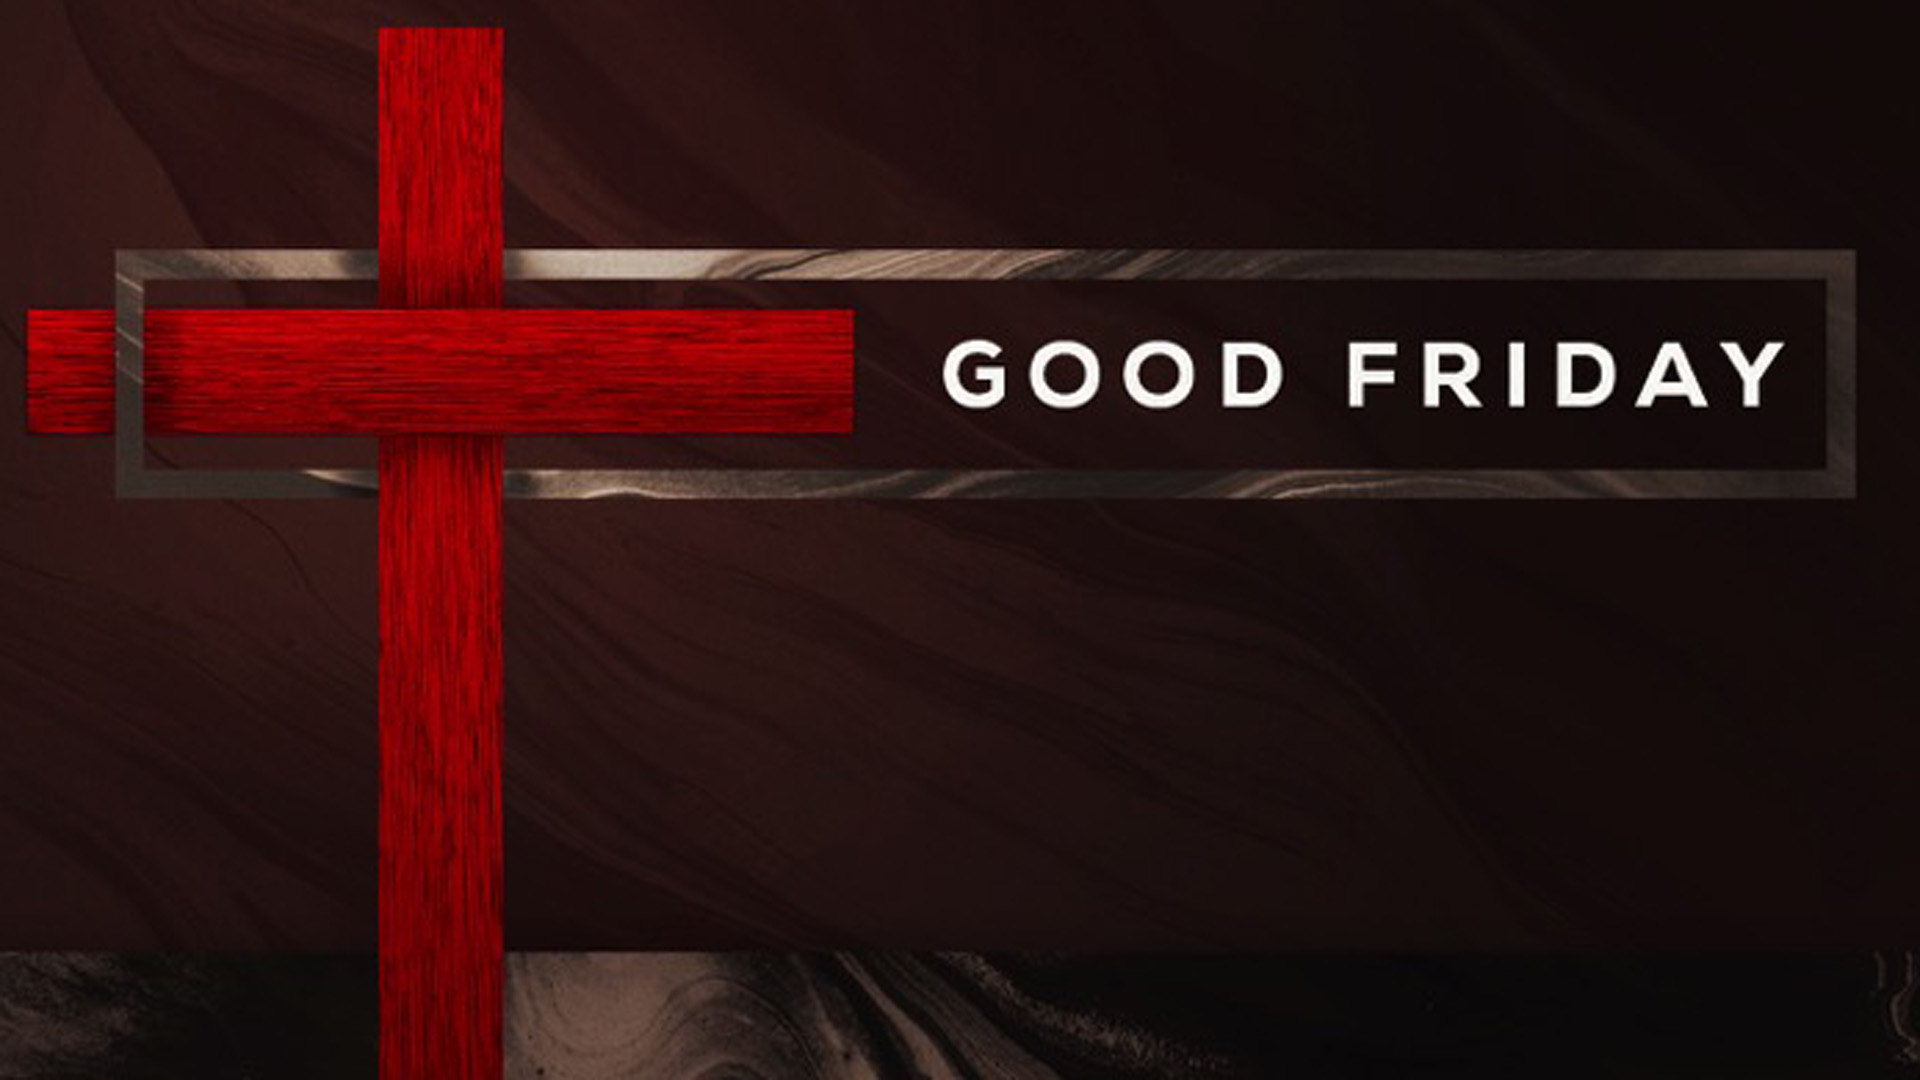 Good friday st anthony of padua st anthony of padua good friday biocorpaavc